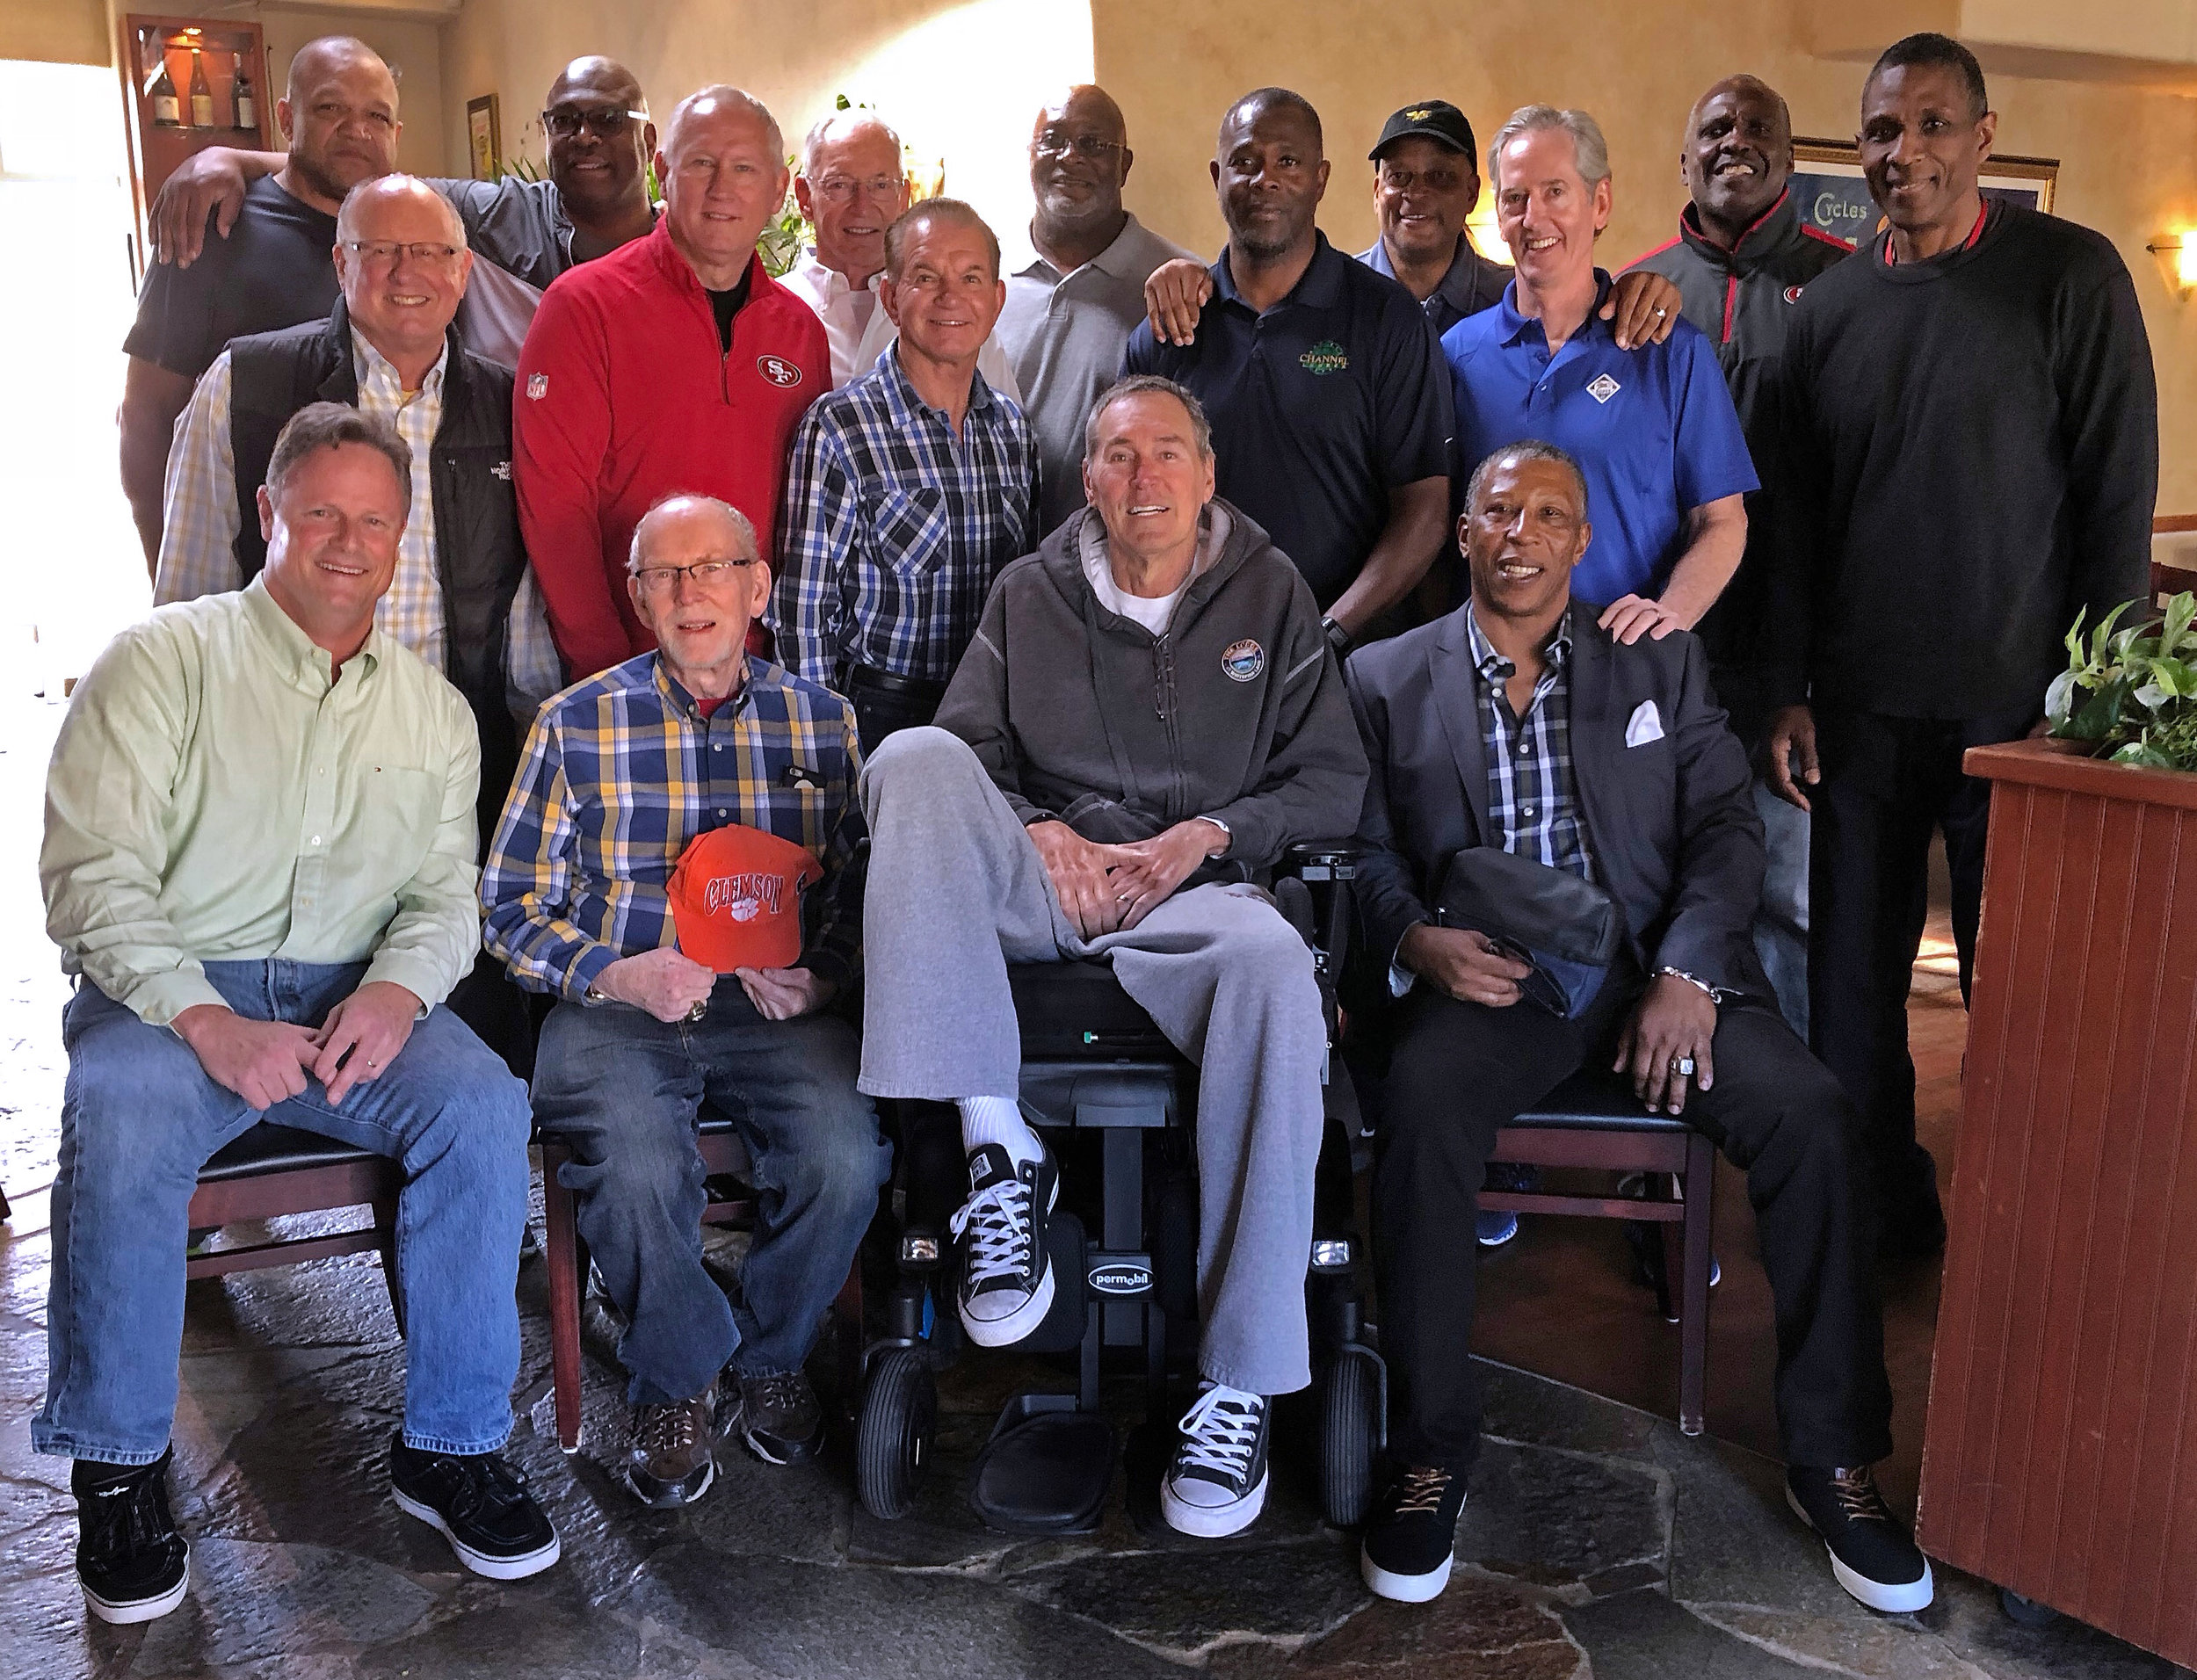 Dwight Clark holds final lunch before move to Montana - Dwight spent one last Tuesday with his buddies in Capitola before he and his wife Kelly moved to Montana.